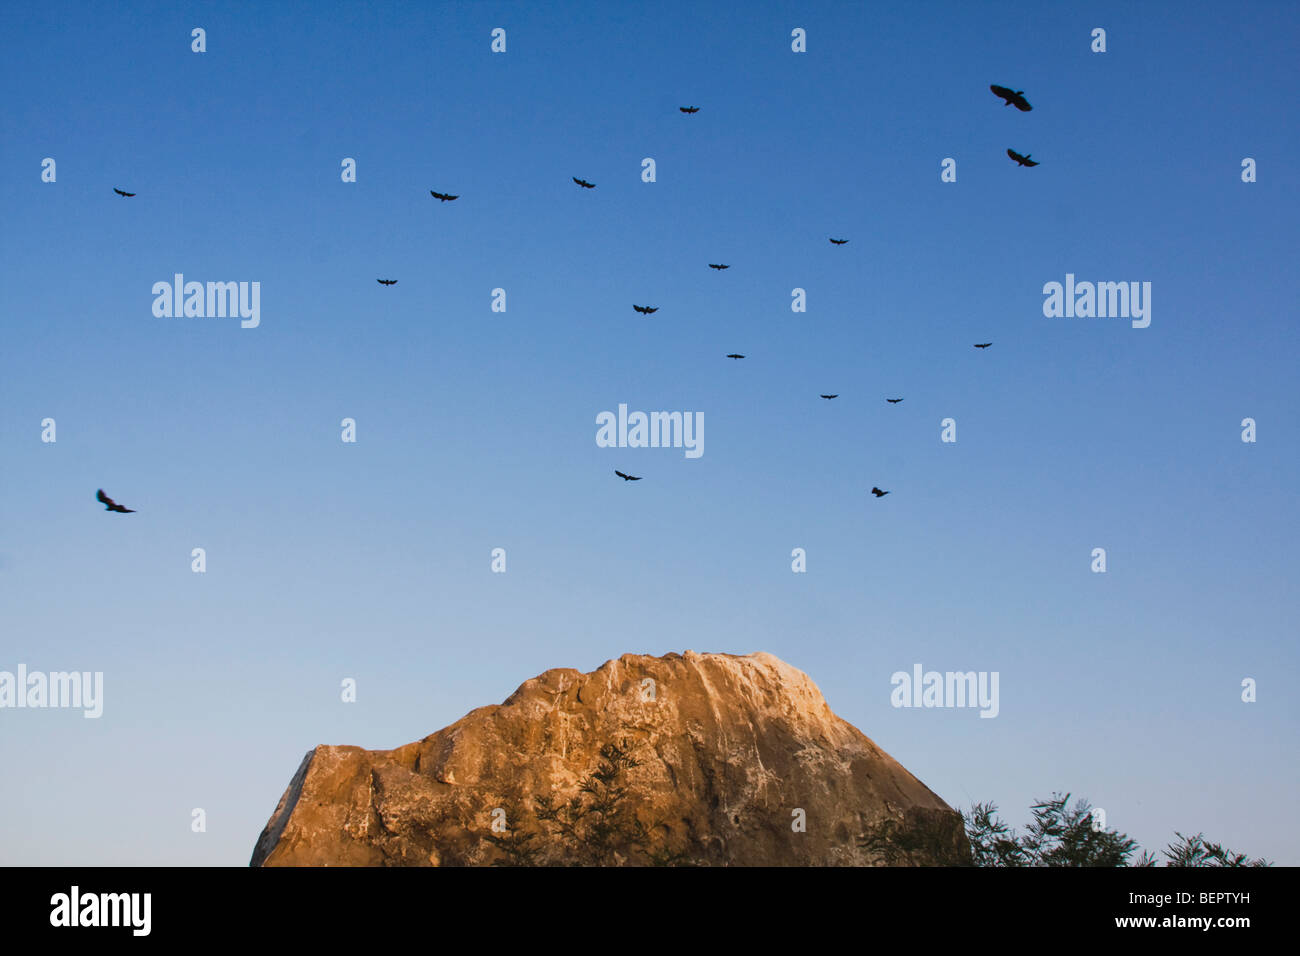 Turkey Vulture (Cathartes aura), adults in flight at roost, Rio Grande Valley, Texas, USA - Stock Image